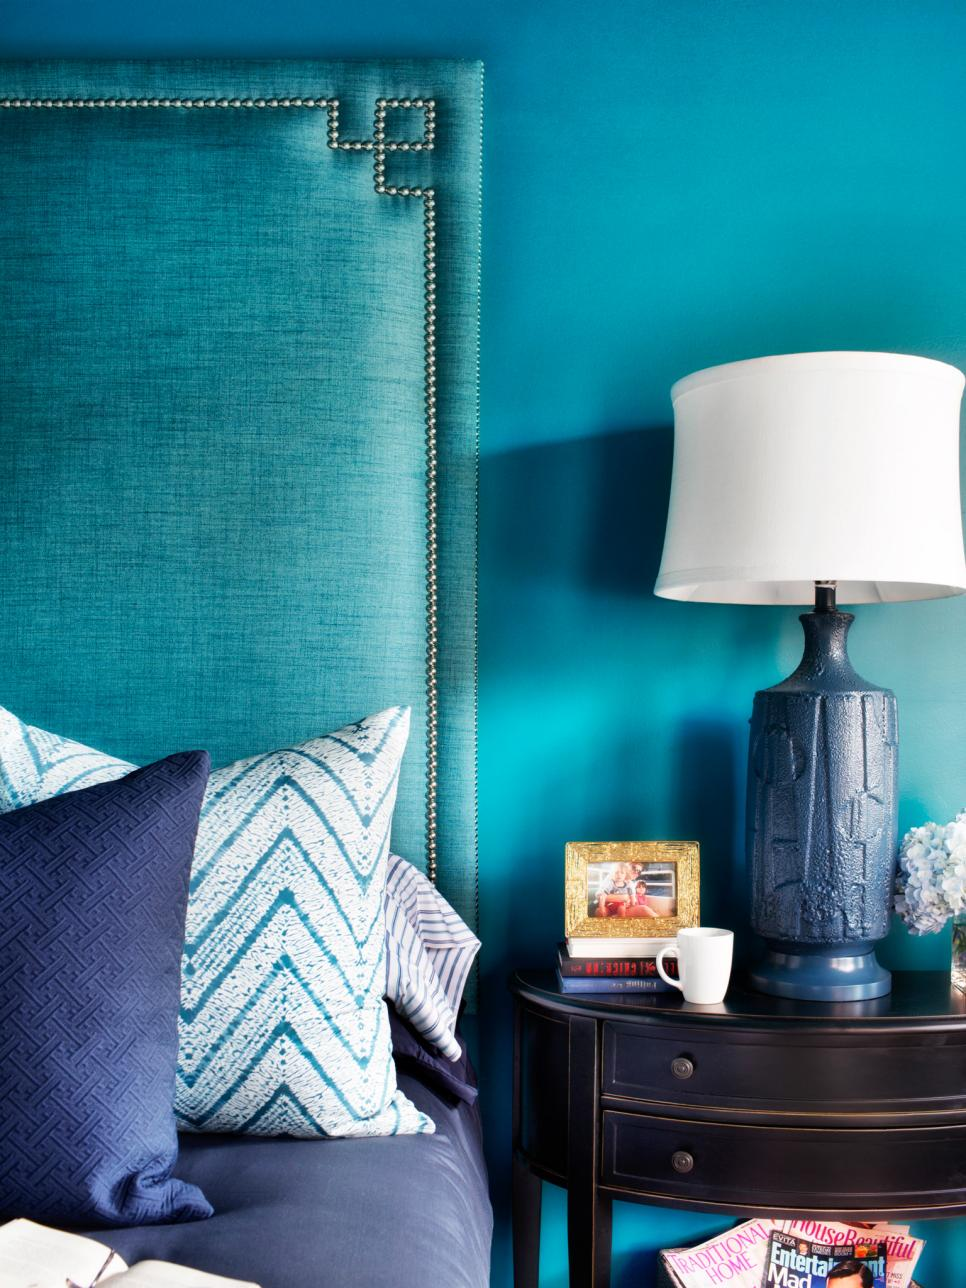 Navy Blue and Teal Master Bedroom